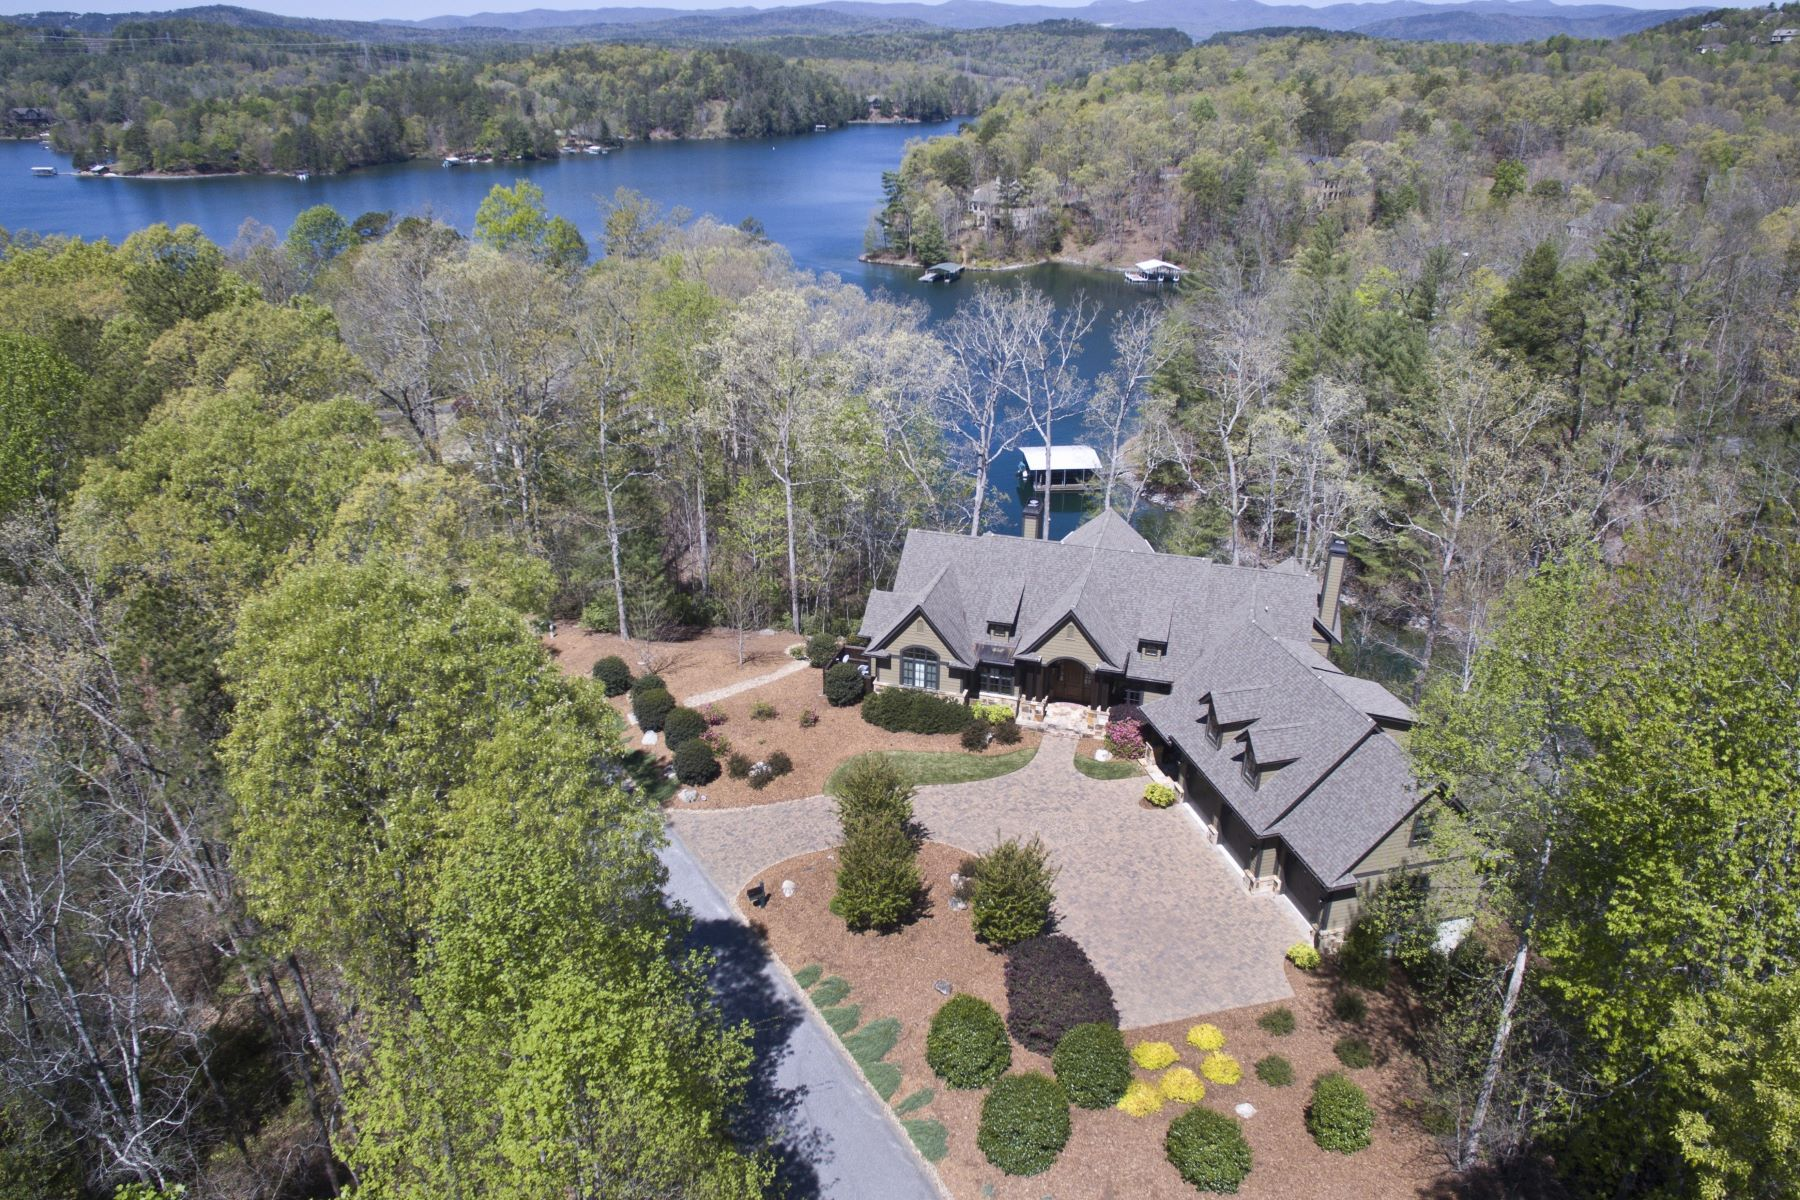 独户住宅 为 销售 在 Casually Elegant Vineyards Waterfront Retreat 110 Red Buckeye Trail, The Cliffs At Keowee Vineyards, Sunset, 南卡罗来纳州, 29685 美国